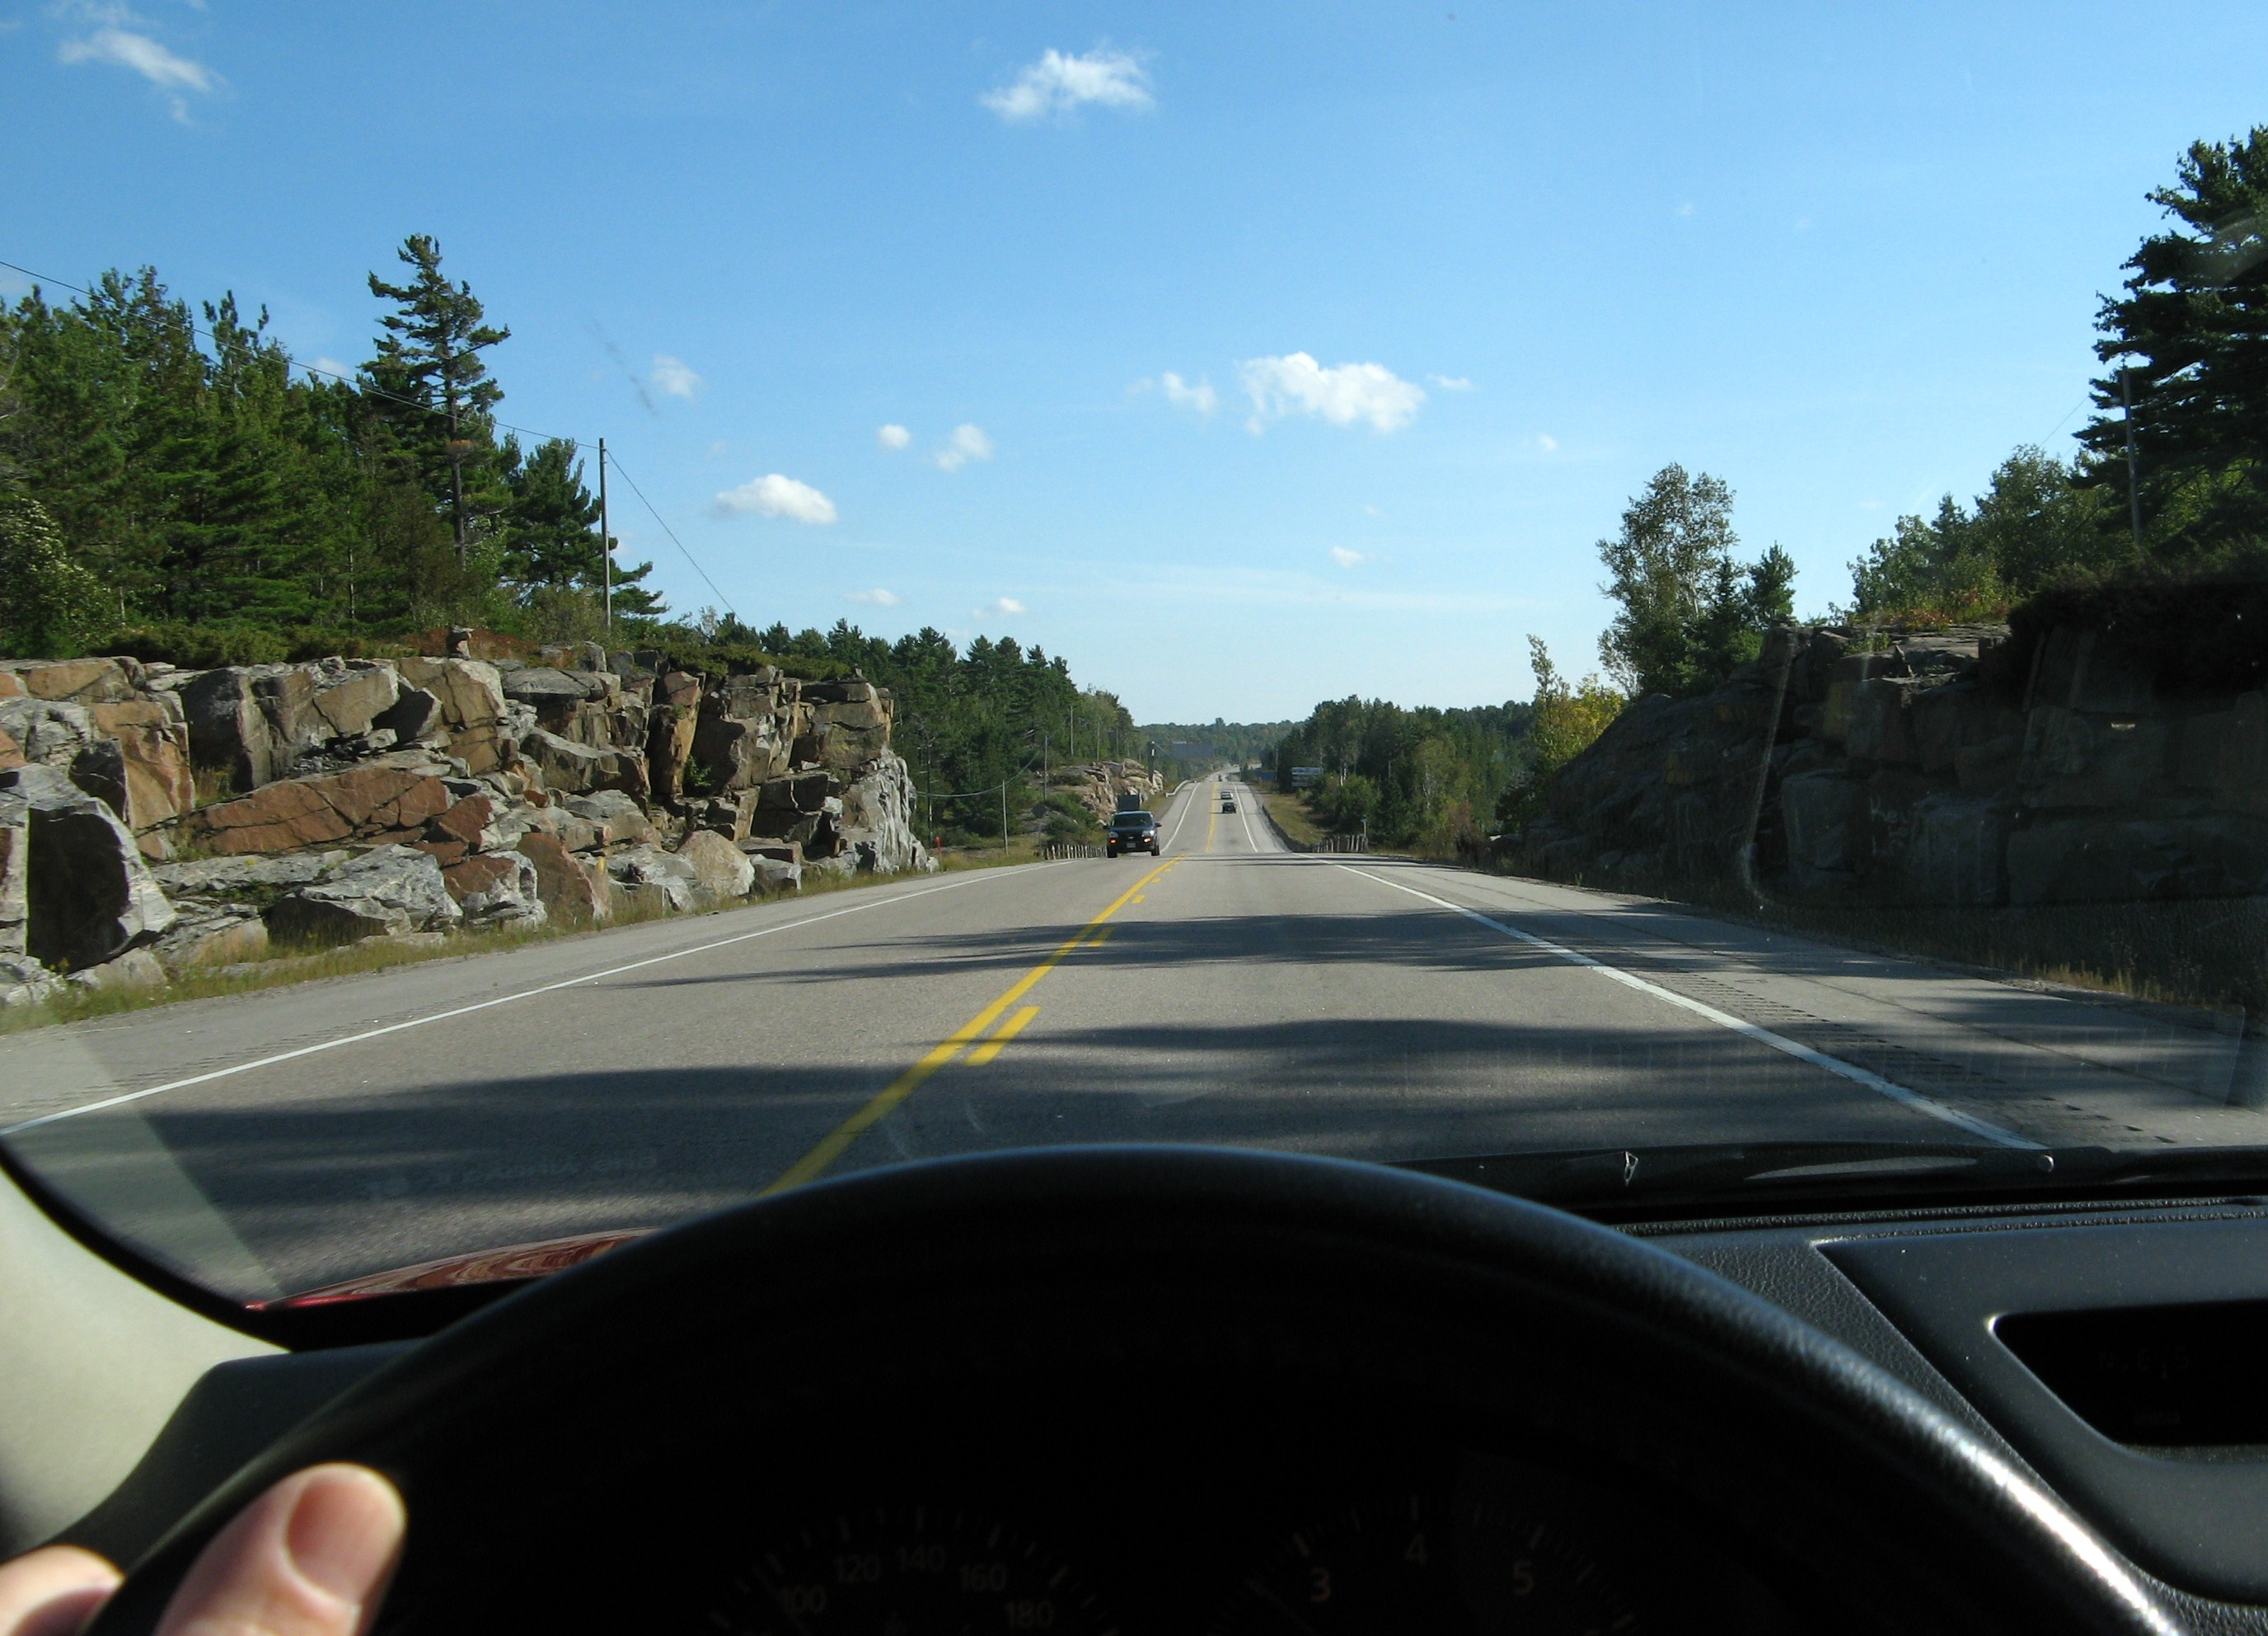 Touring on Hwy 69 Northern Ontario.